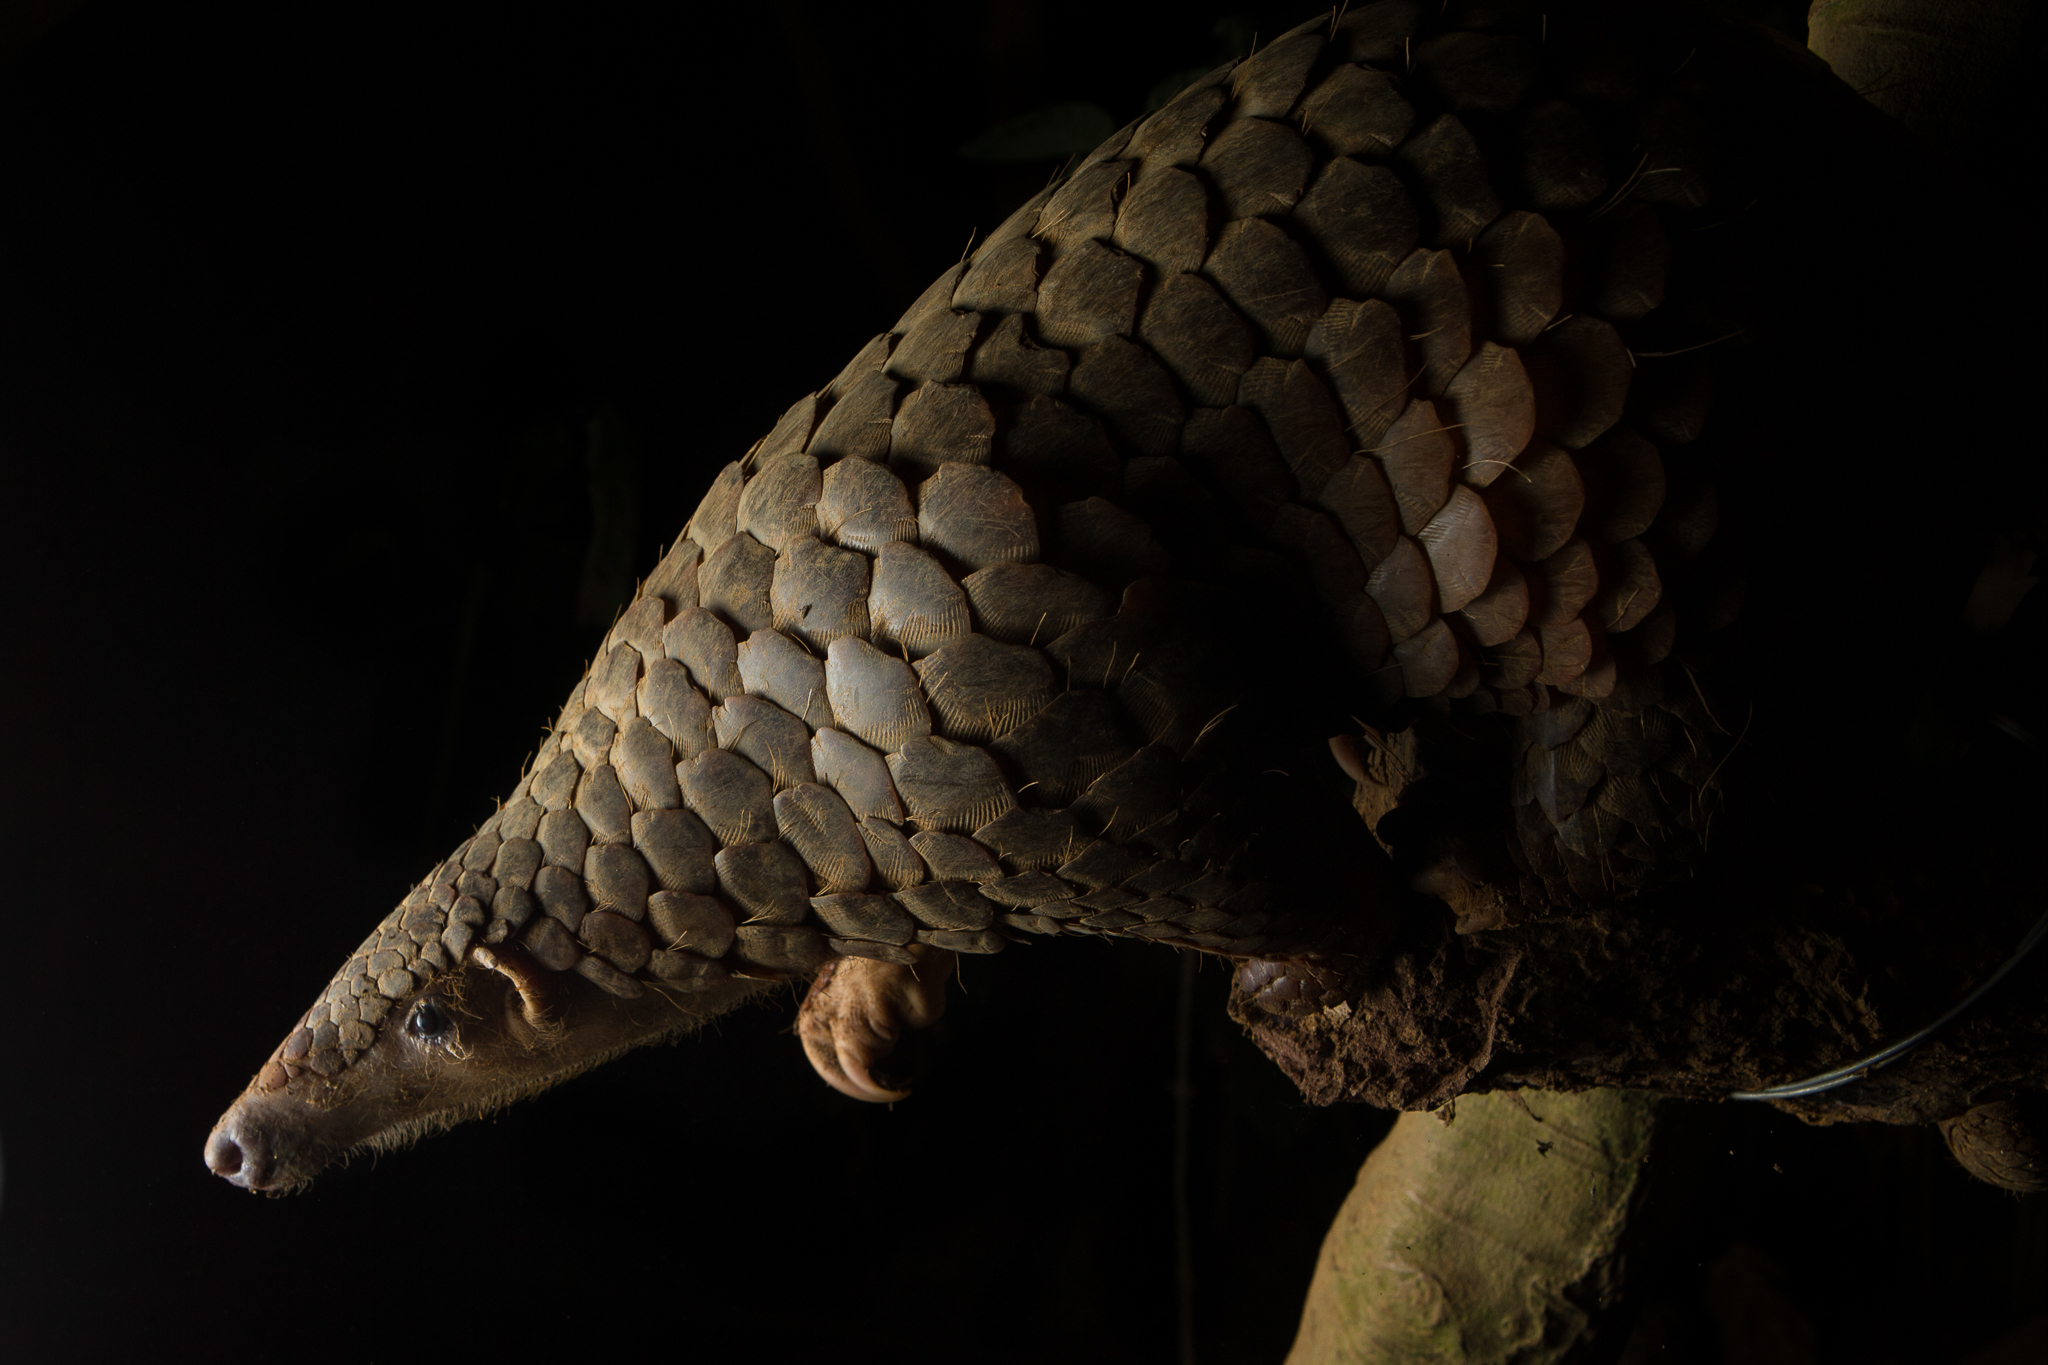 After being confiscated from poachers and rehabilitated, a Sunda pangolin (Manis javanica) awaits release into Cuc Phuong National Park in Vietnam.